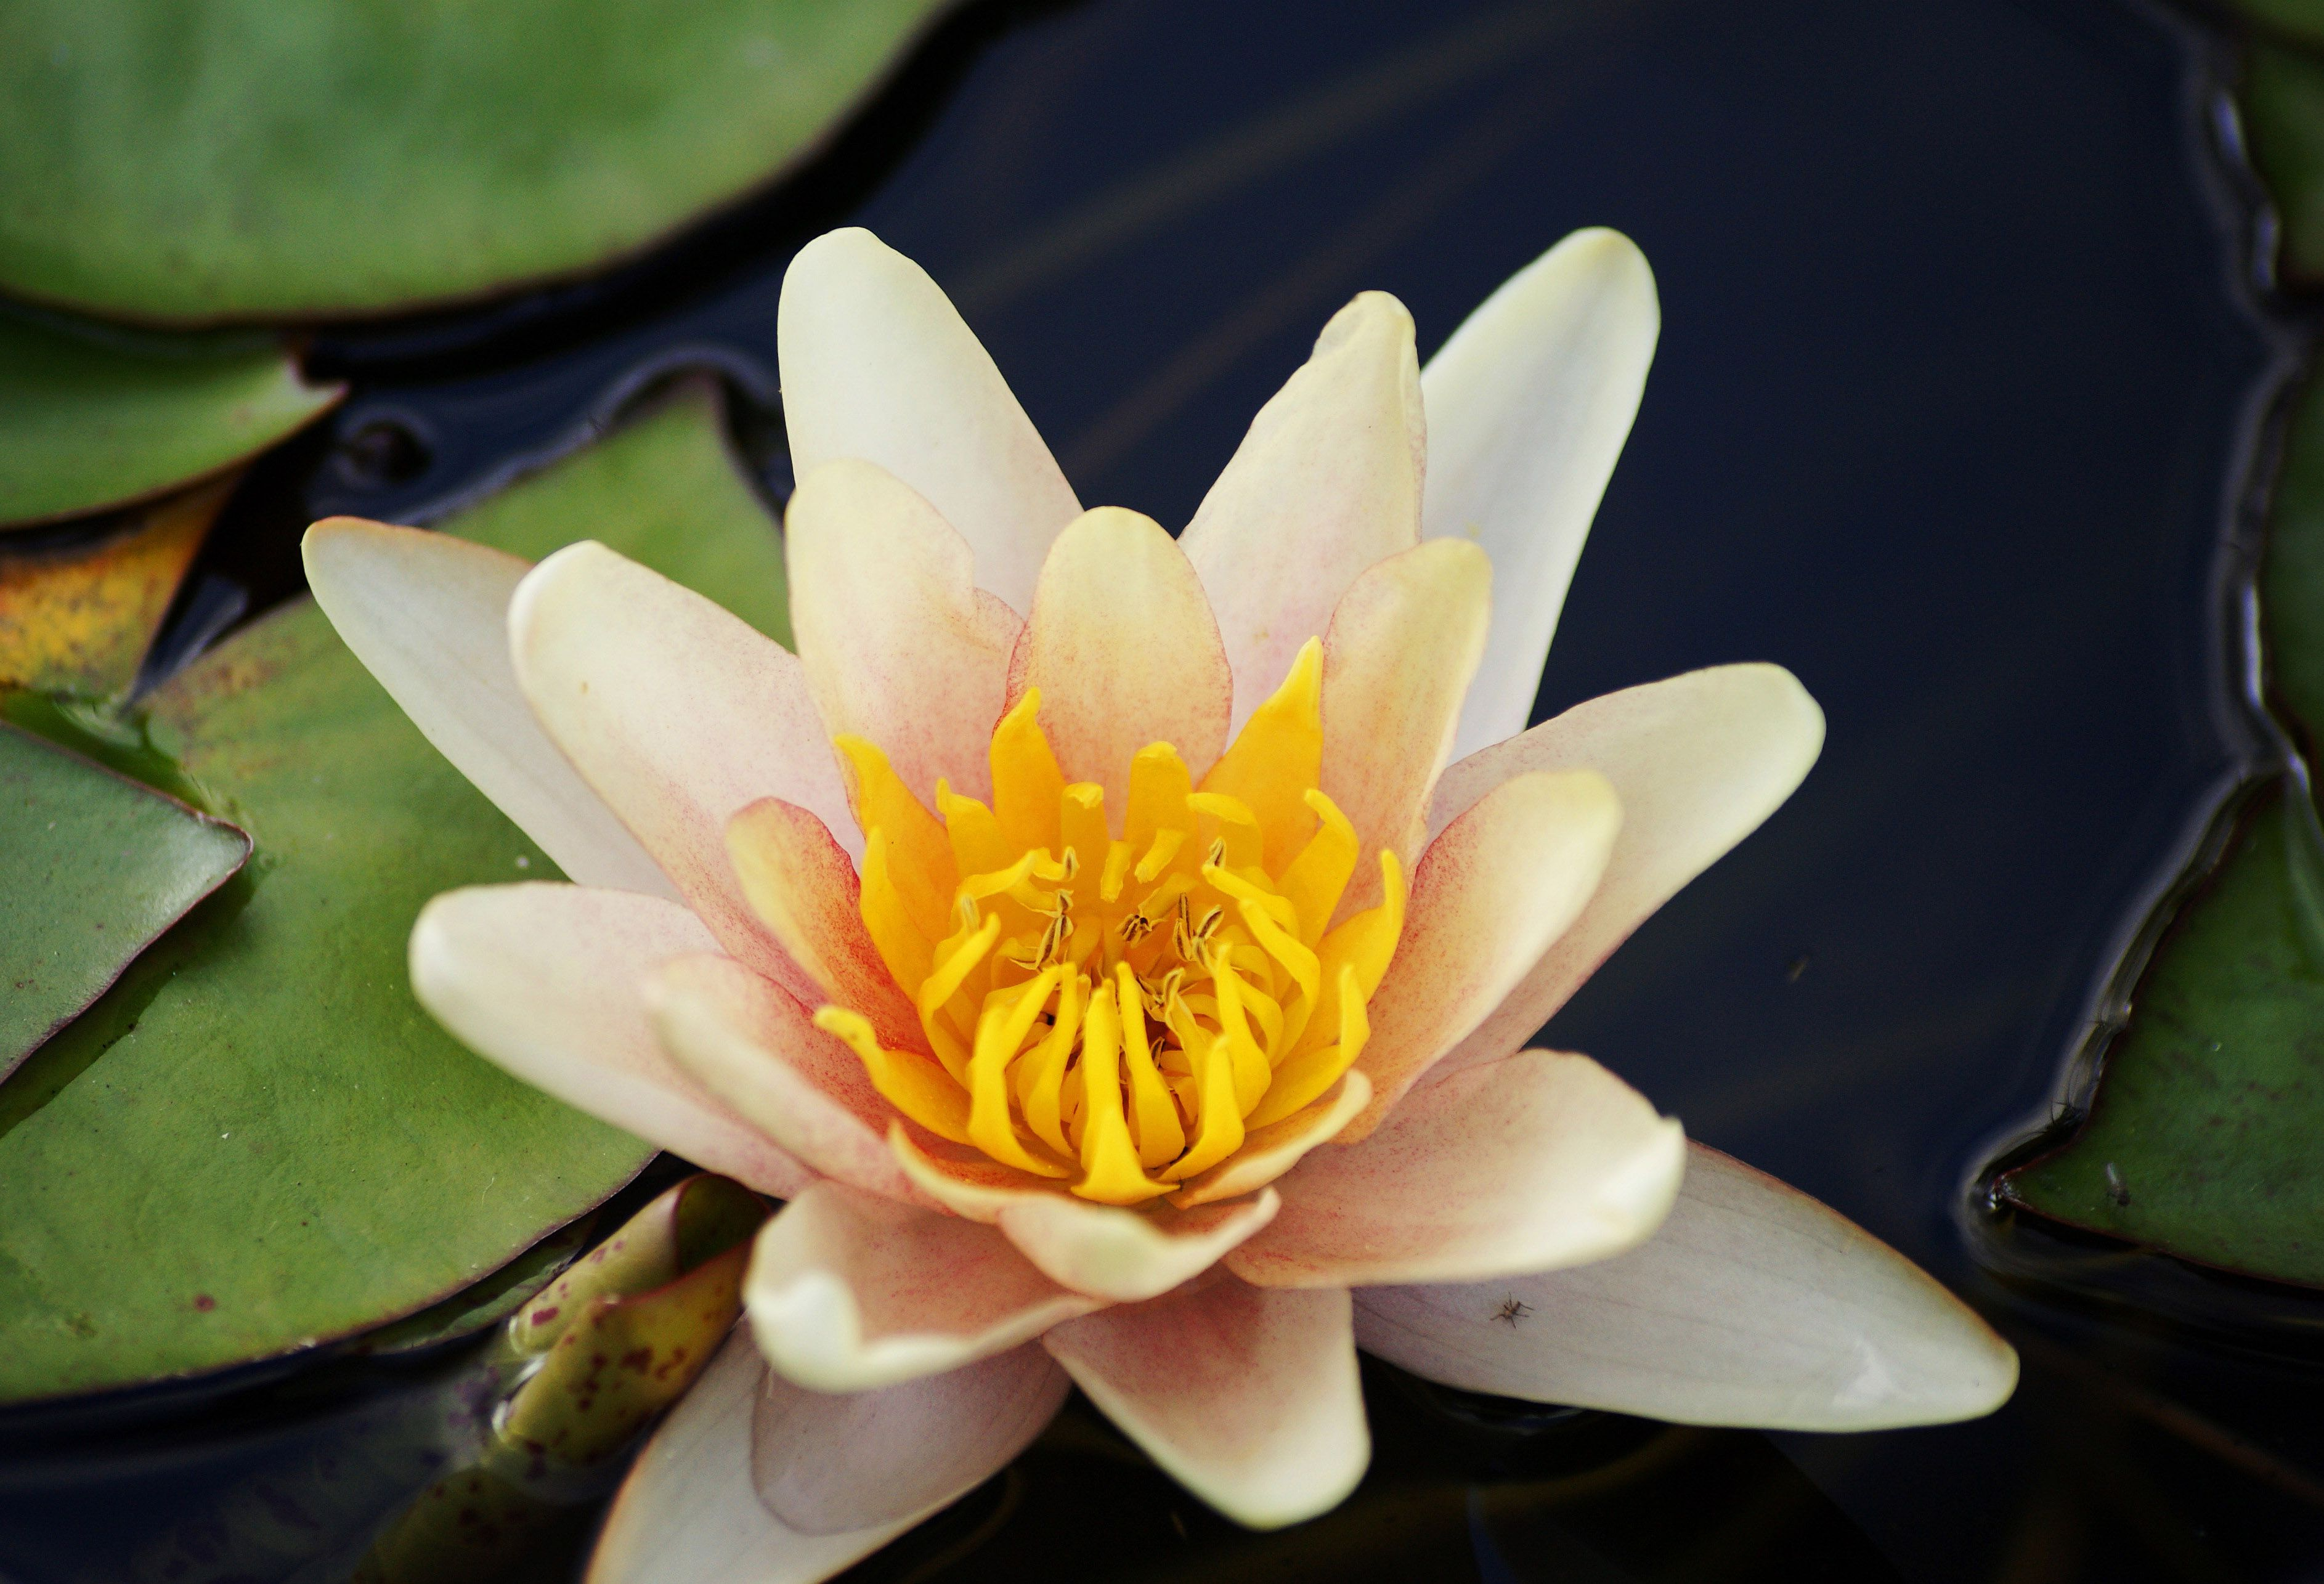 Nature high resolution image with white lotus flower flower nature high resolution image with white lotus flower izmirmasajfo